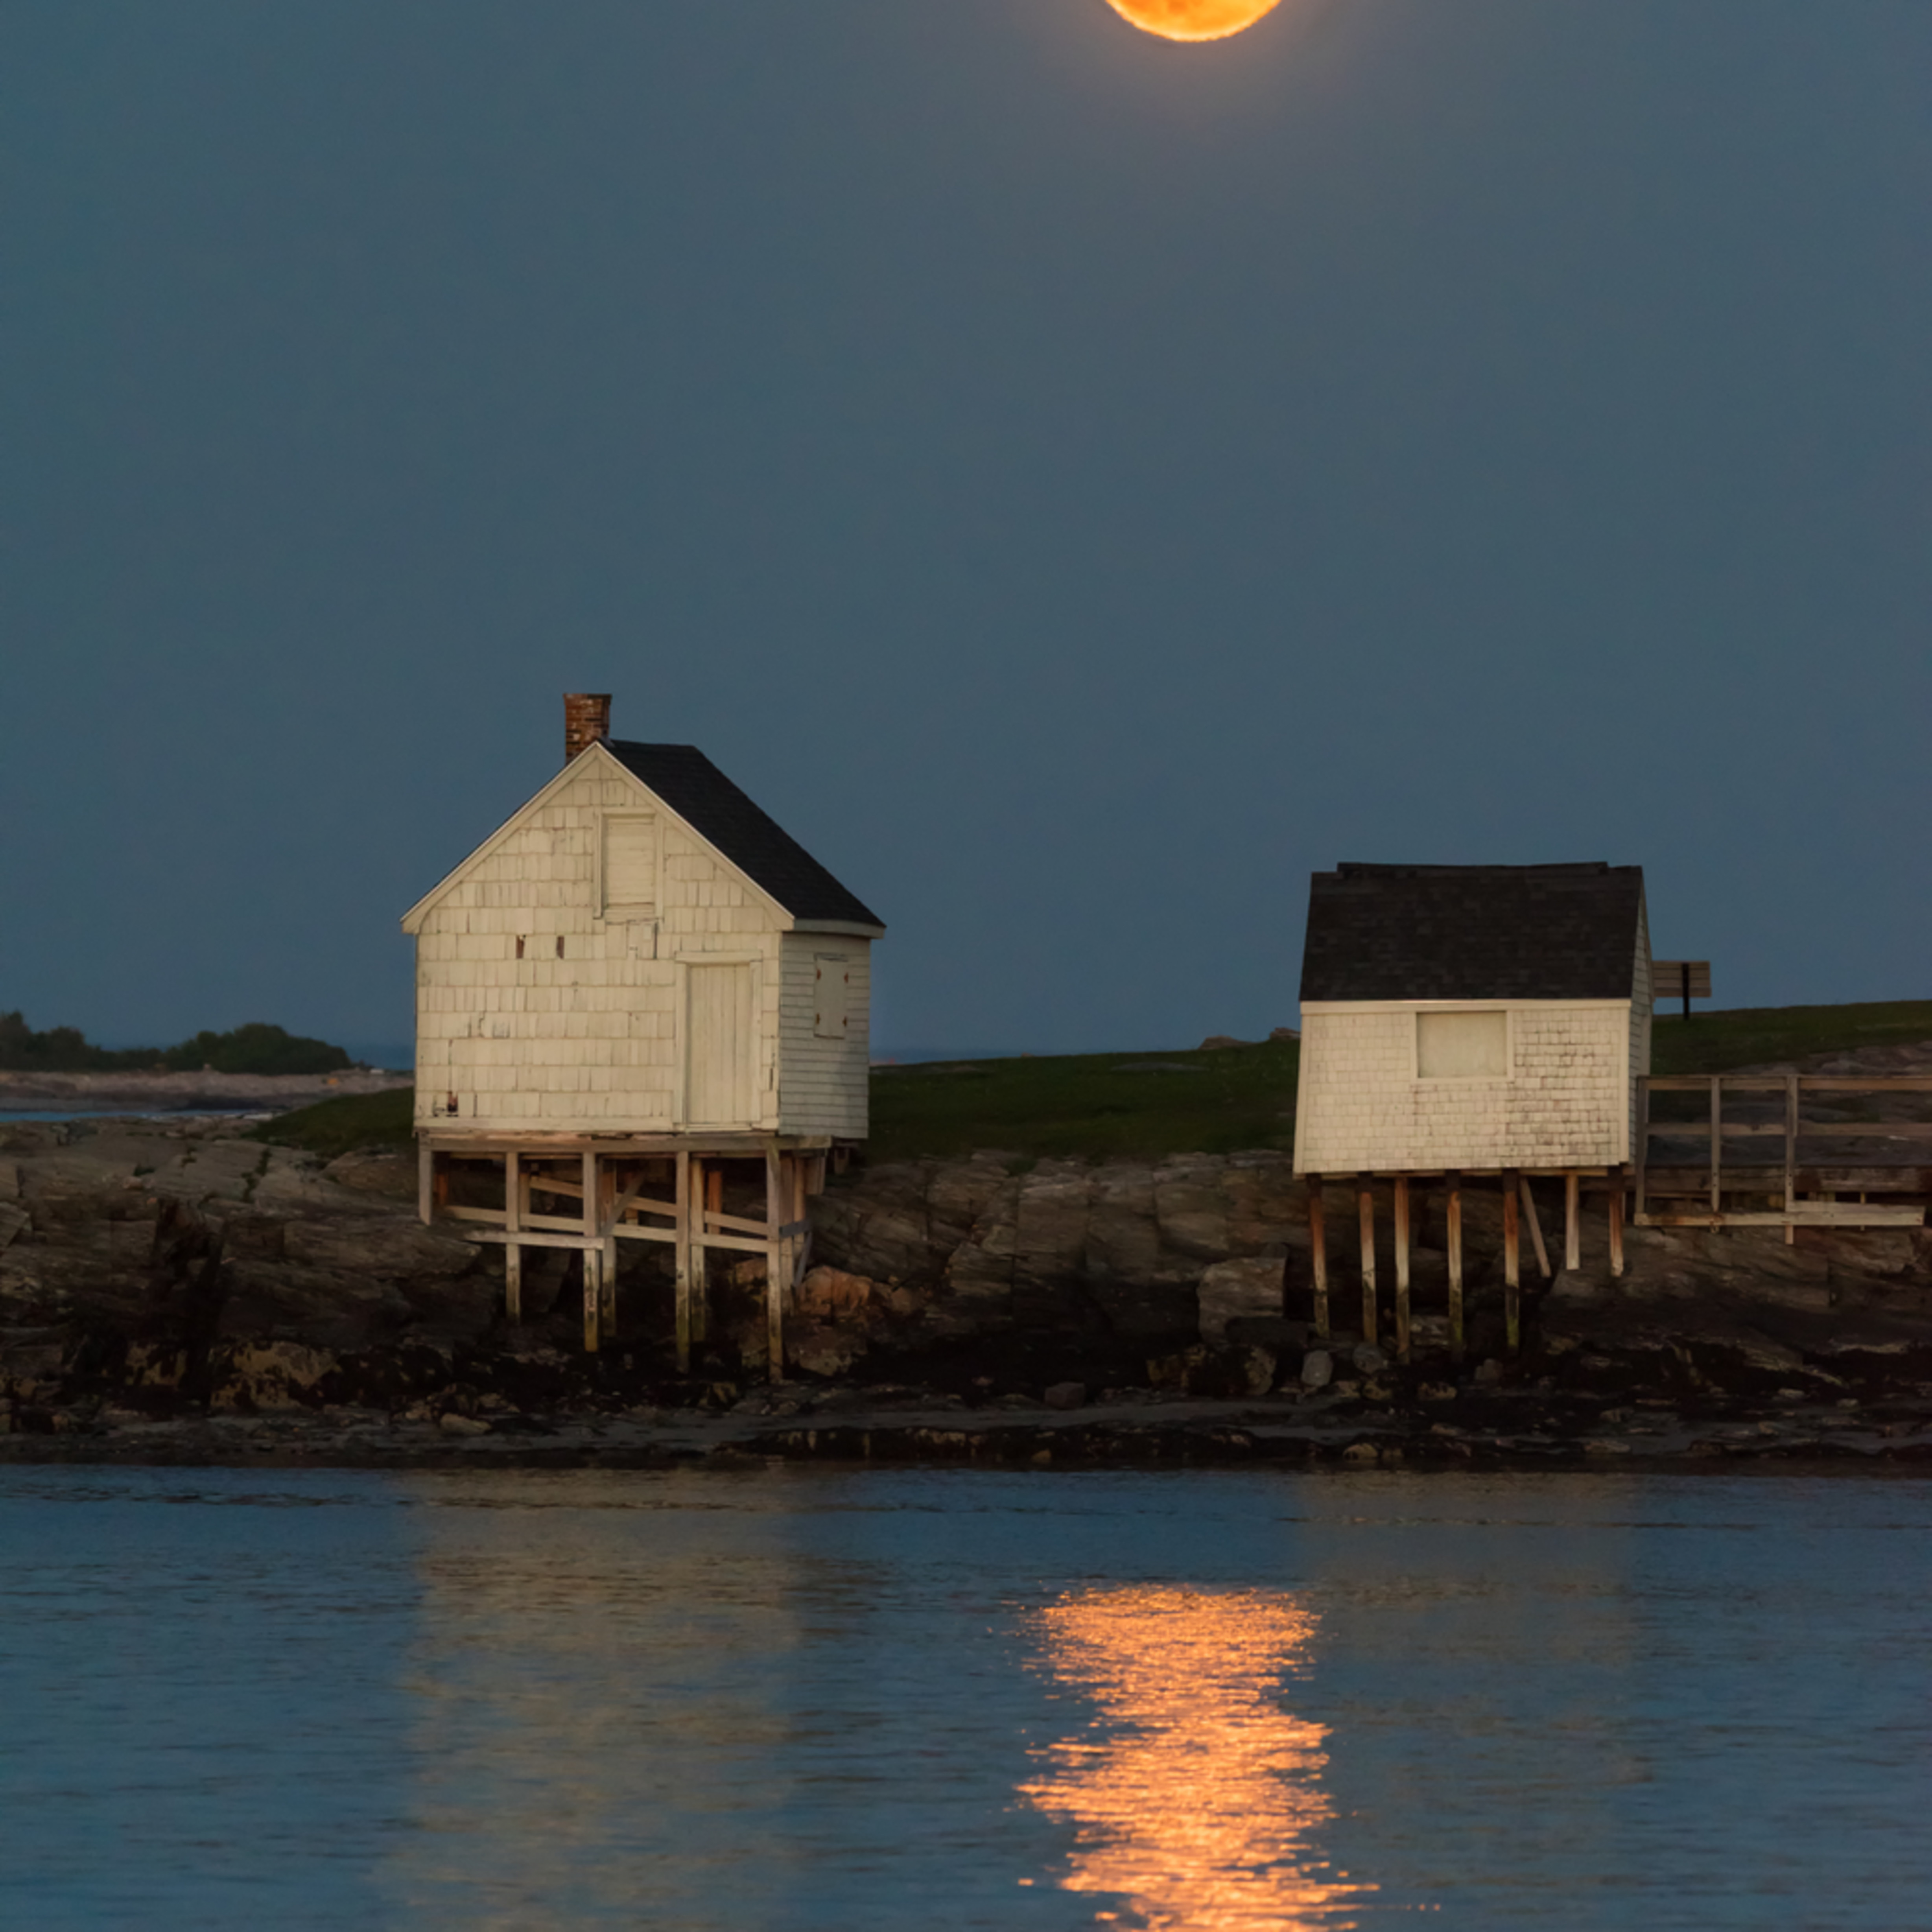 Moonrise at willard beach c5lezo